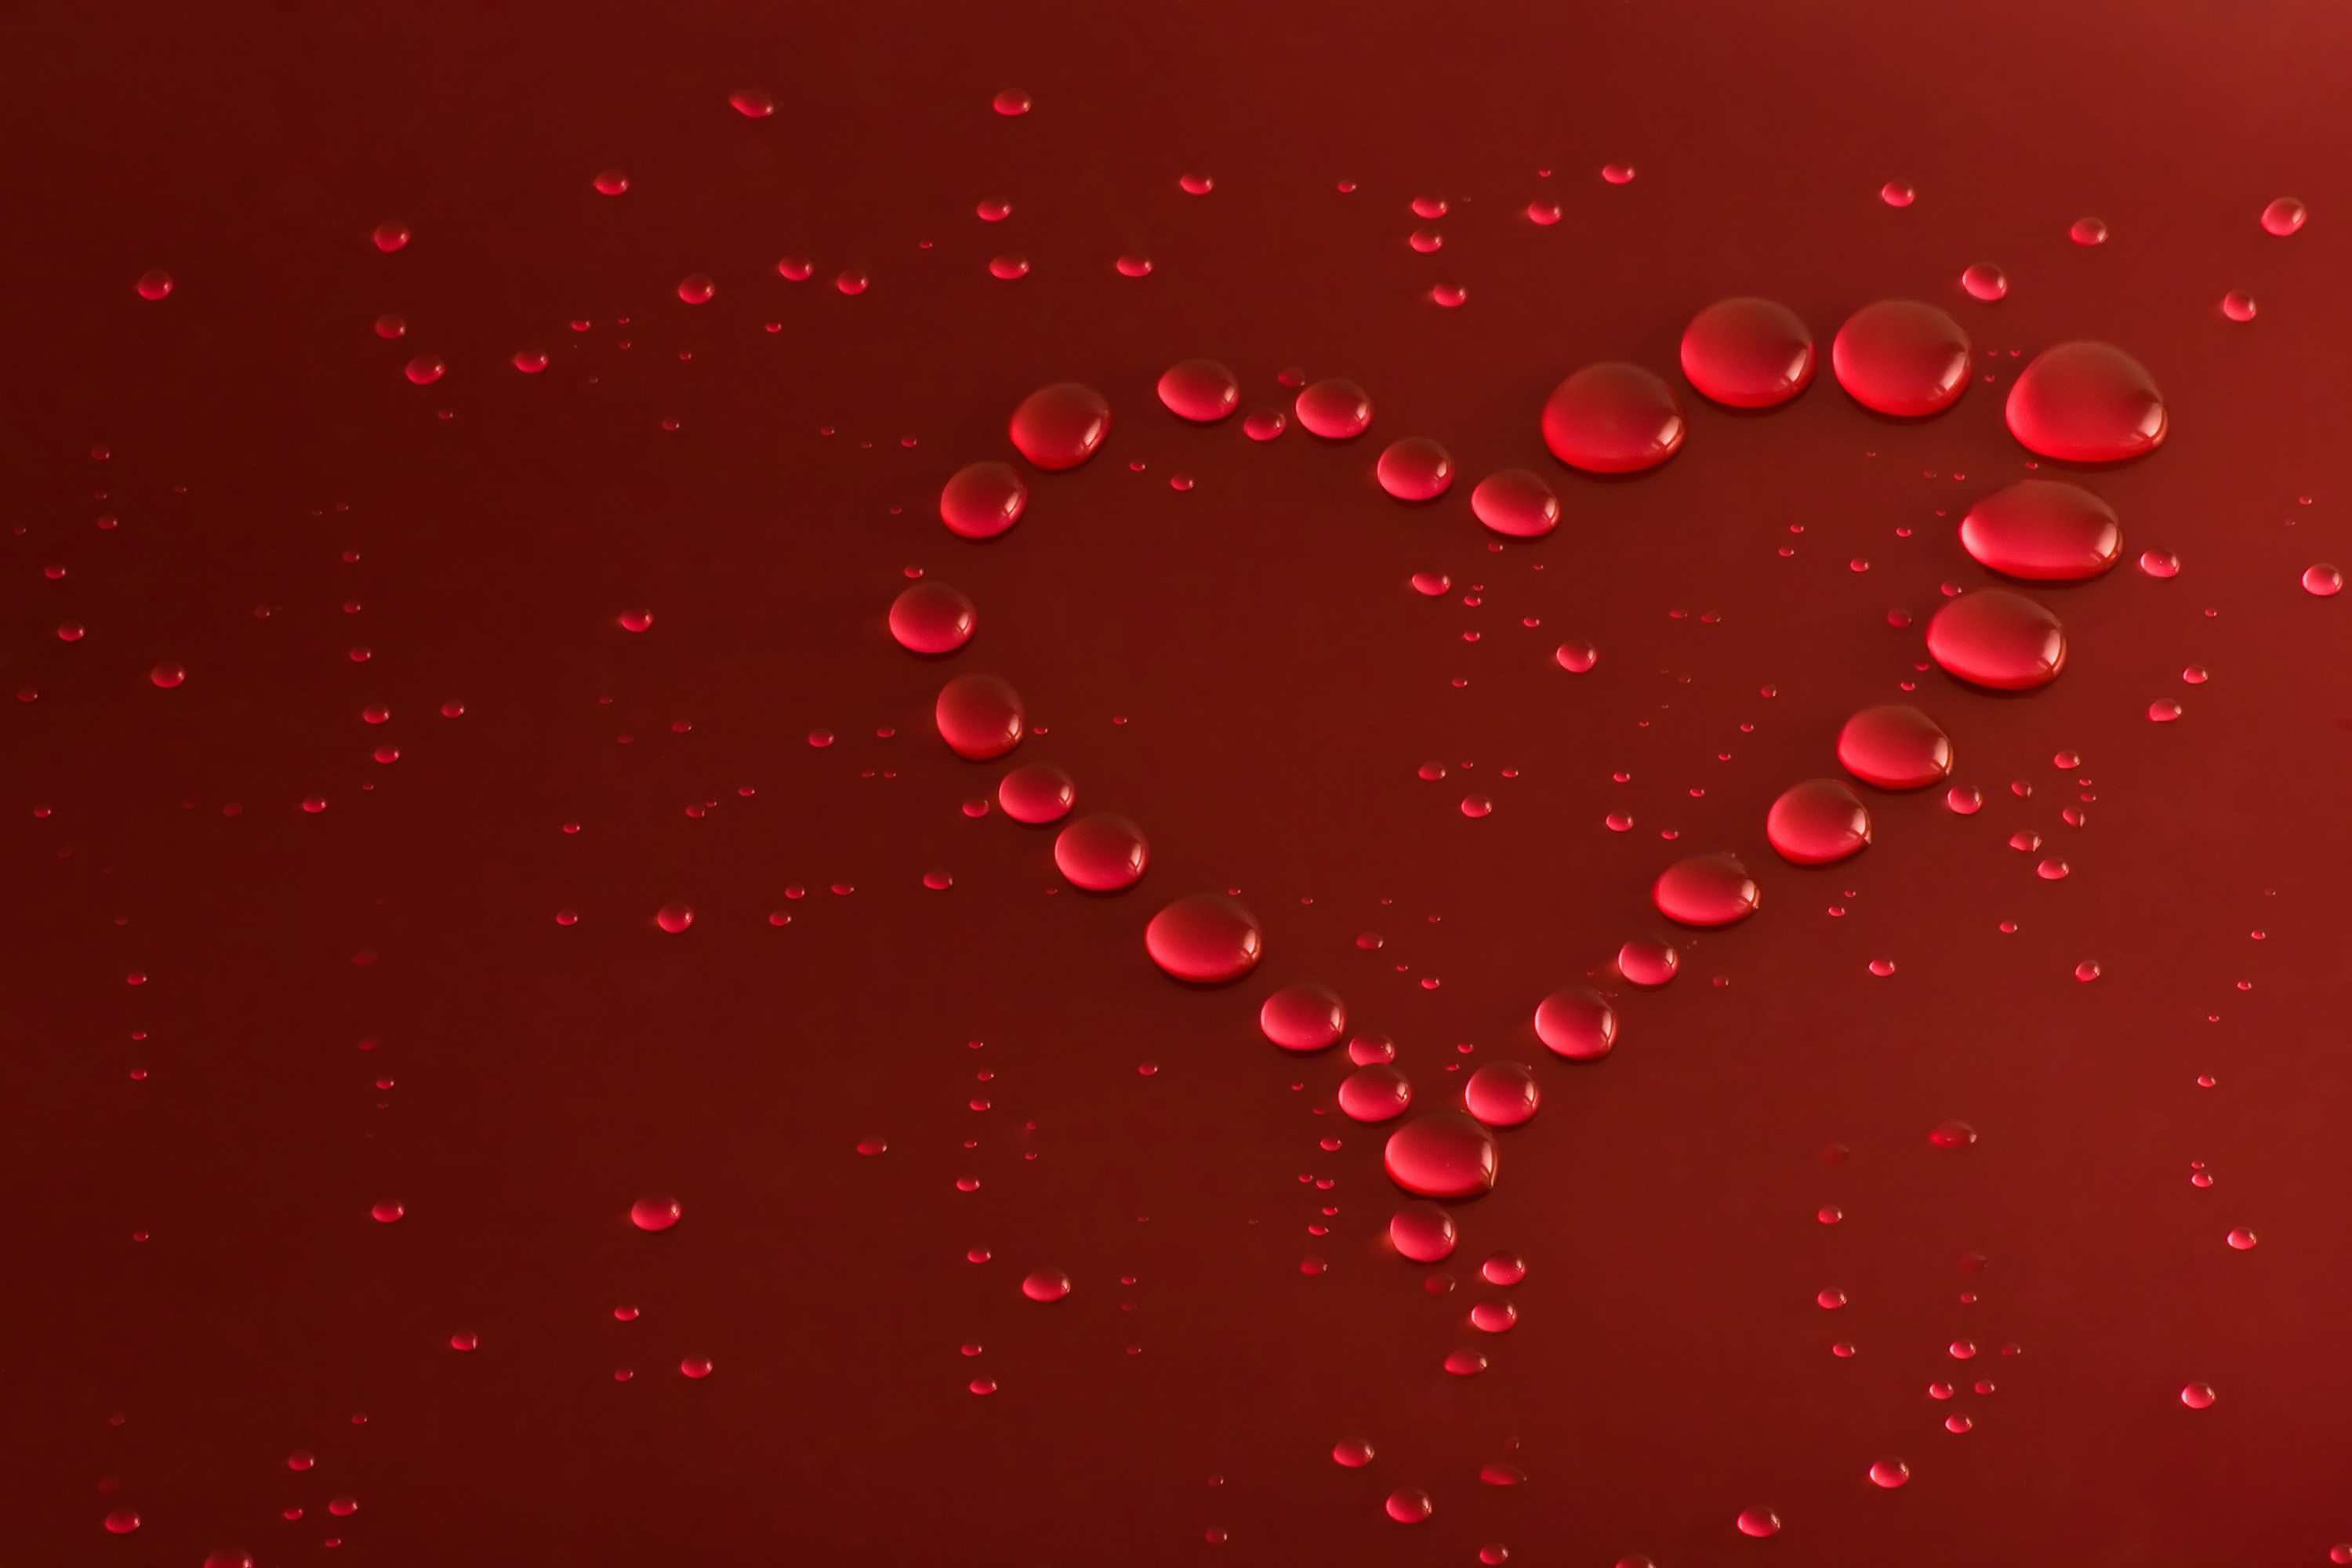 red-love-heart_HD_wallpapers